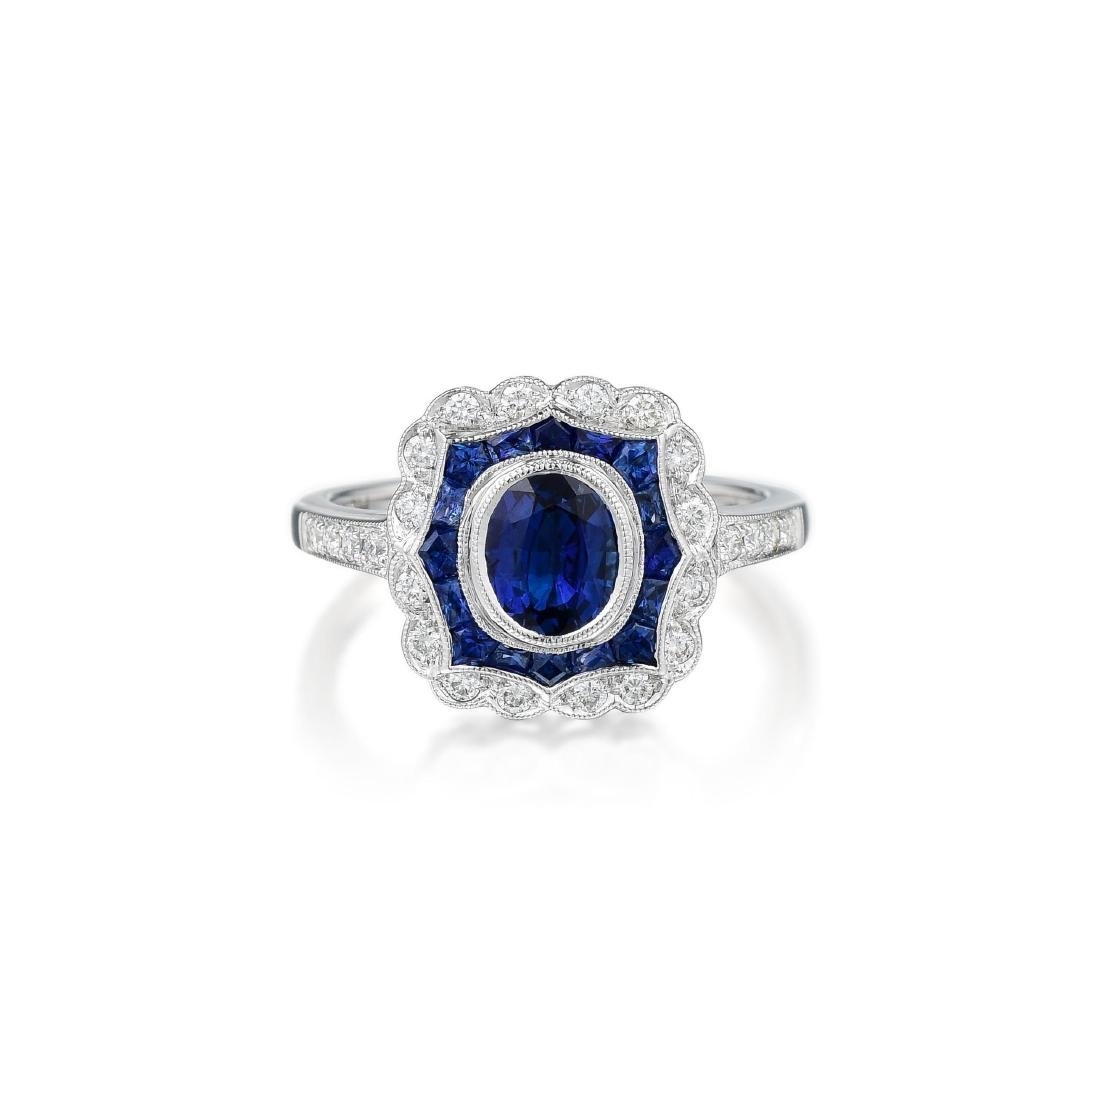 A 14K White Gold Sapphire and Diamond Ring